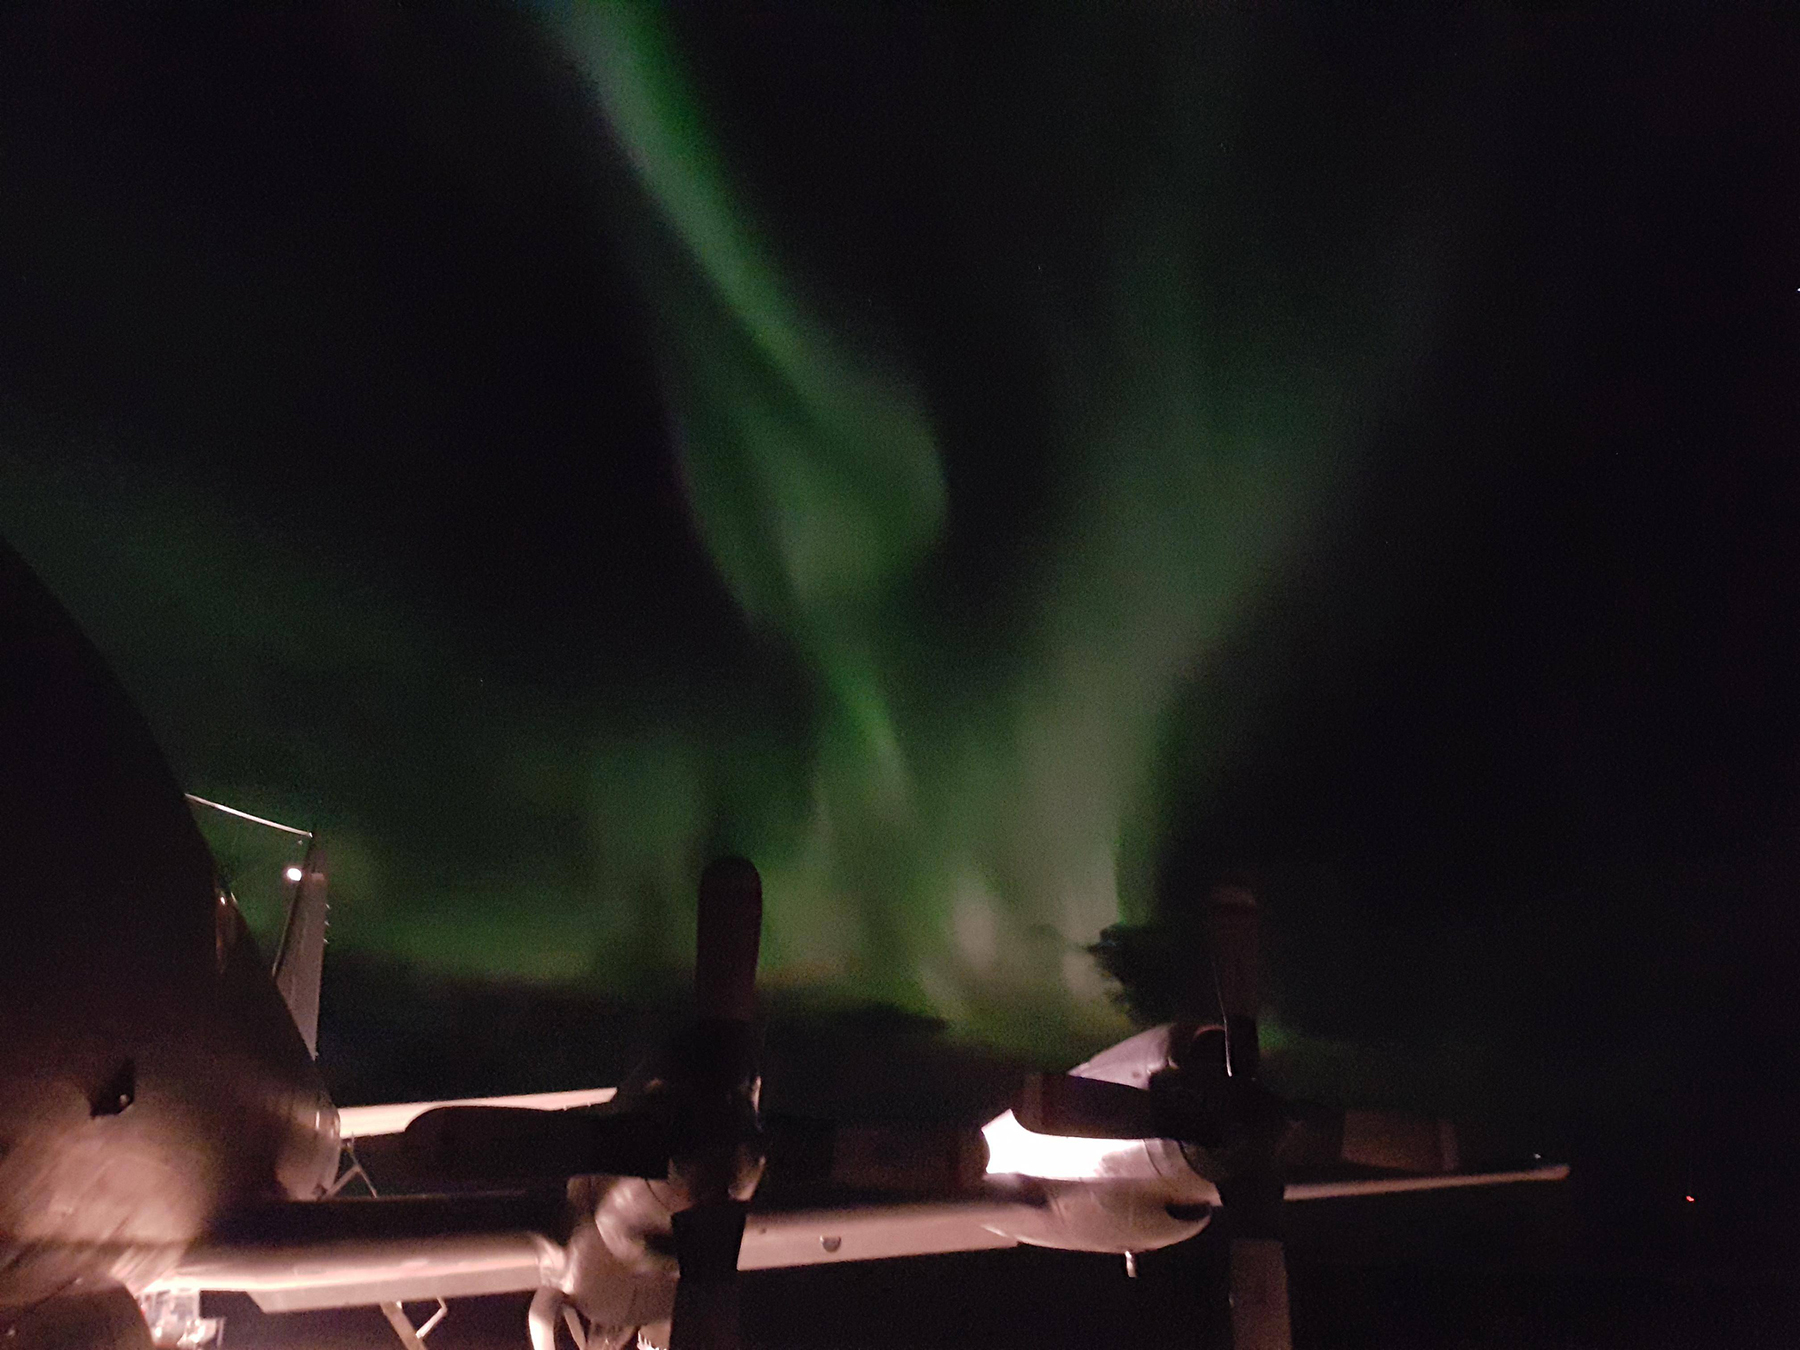 A 415 Long Range Patrol Force Development Squadron CP-140 Aurora aircraft chills under the aurora borealis while deployed on an exercise to Andøya Air Station in Norway. PHOTO: Submitted